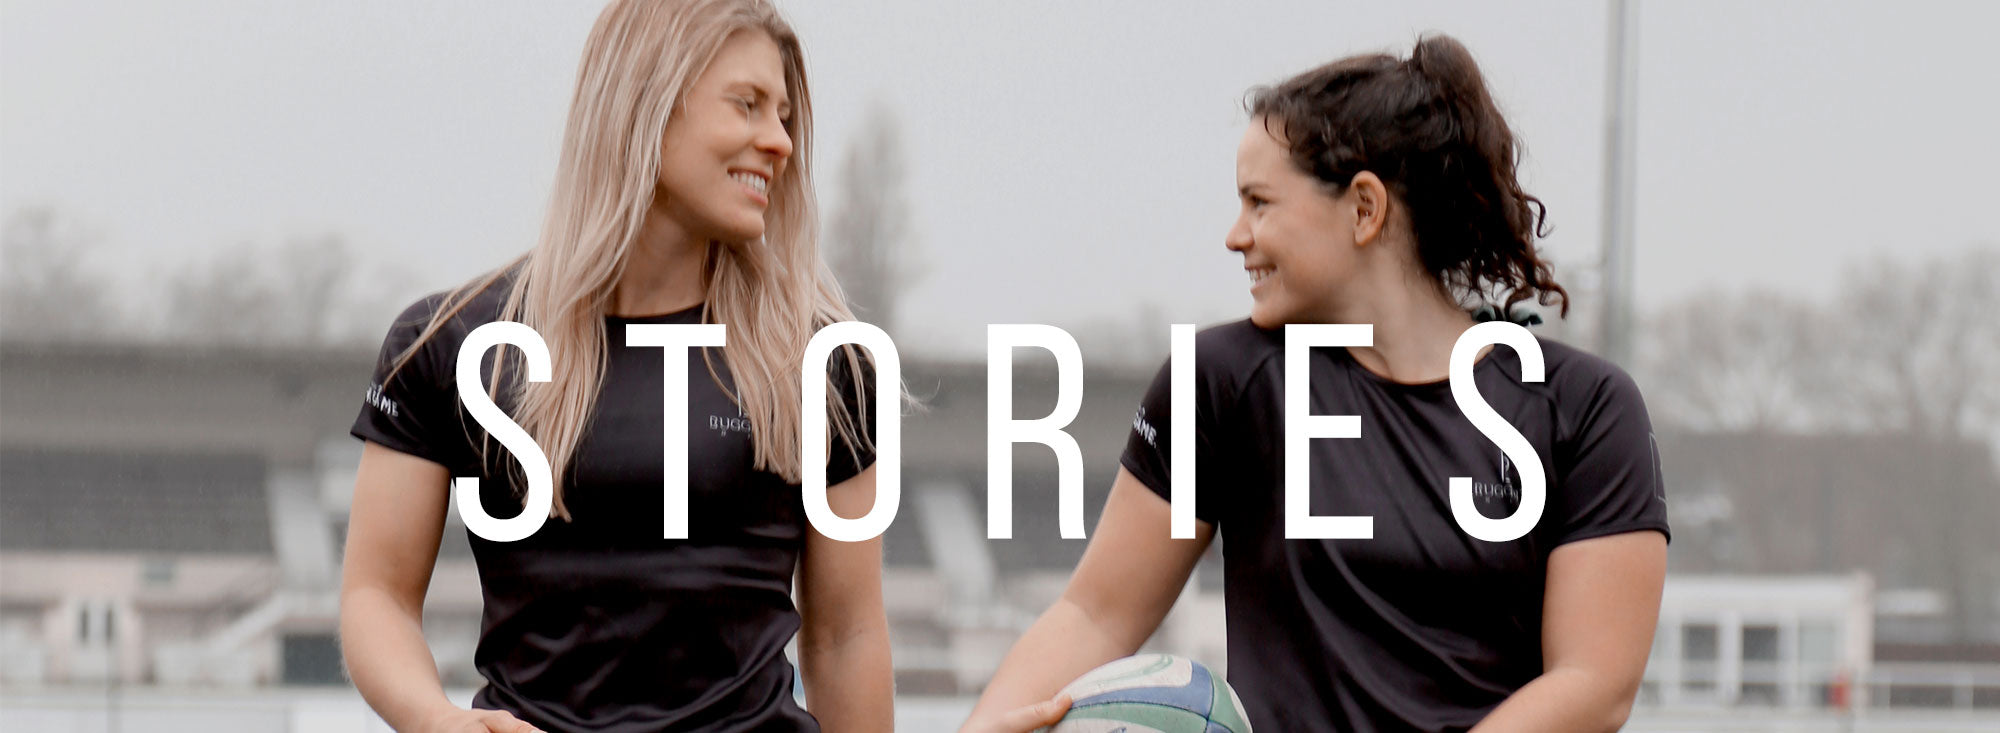 Rugby Active Wear for Women